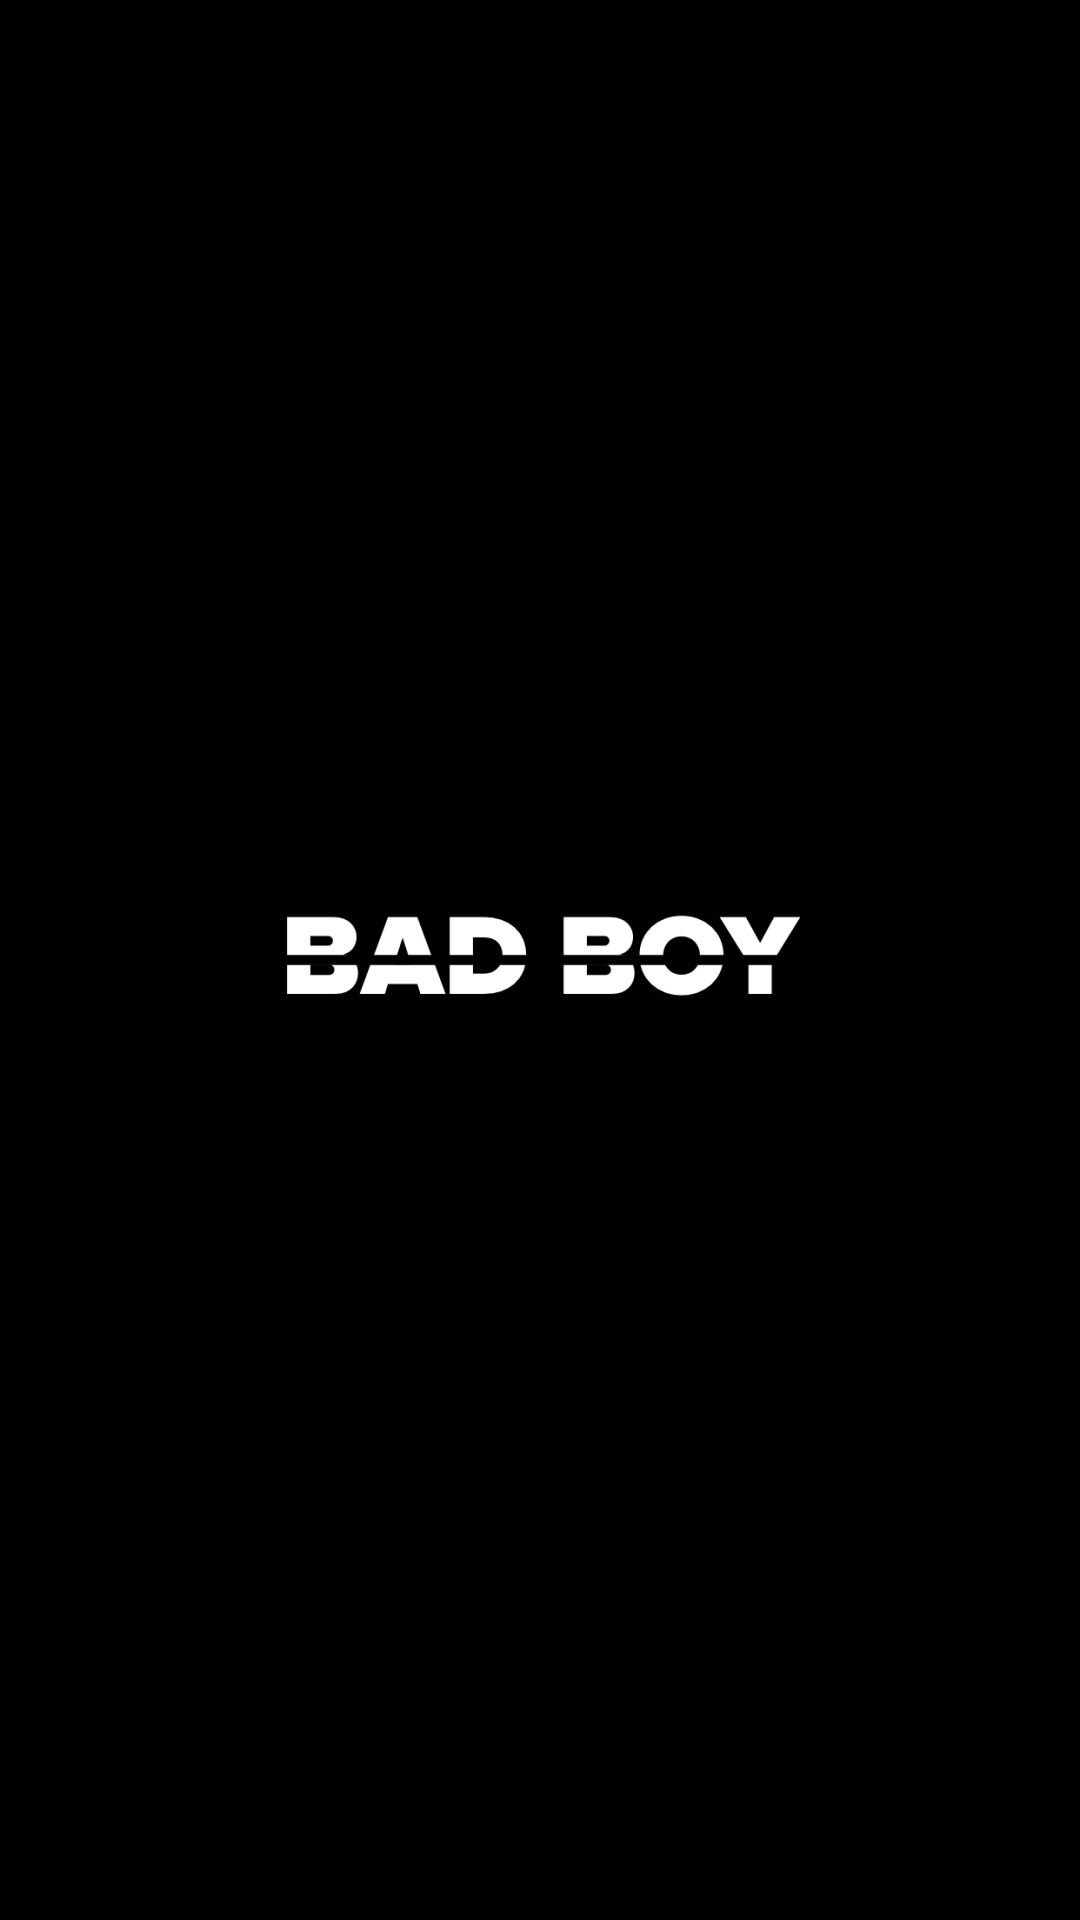 Fresh Bad Boy Hd Wallpaper Boys Wallpaper Bad Boys Tumblr Hd Cool Wallpapers